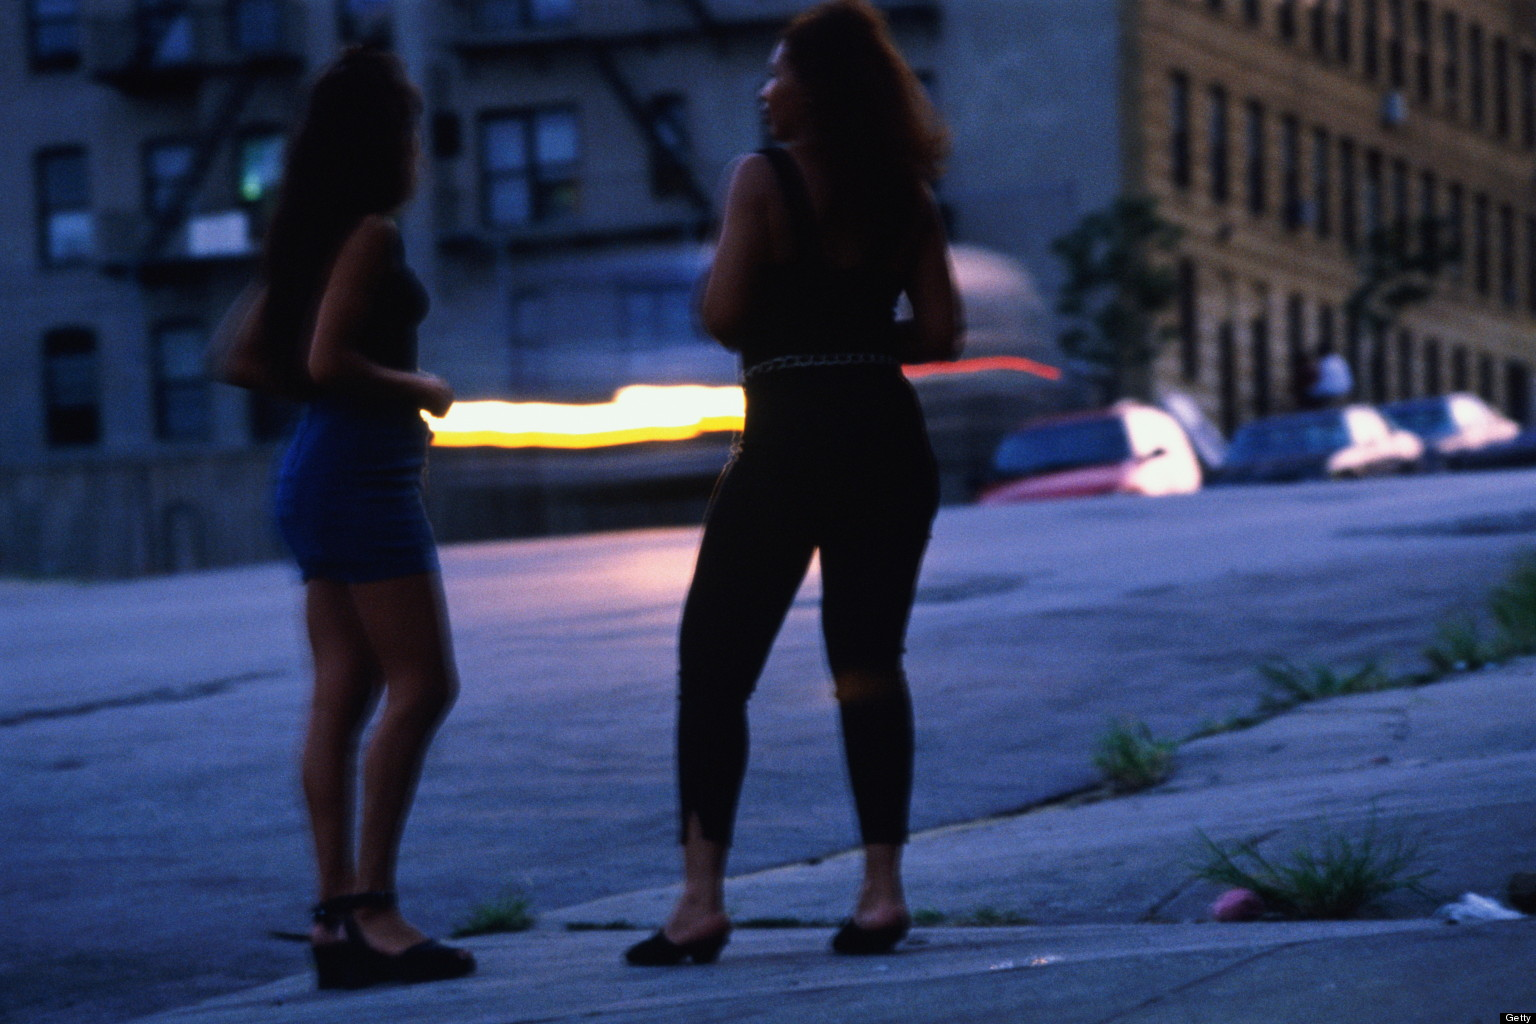 prostution in canada Prostitution in canada's wiki: current laws on prostitution in canada, introduced in 2014, make it illegal to purchase sexual services but legal to sell them according to the canadian department of justice, the new legal framework reflects a significant paradigm shift away from the t.